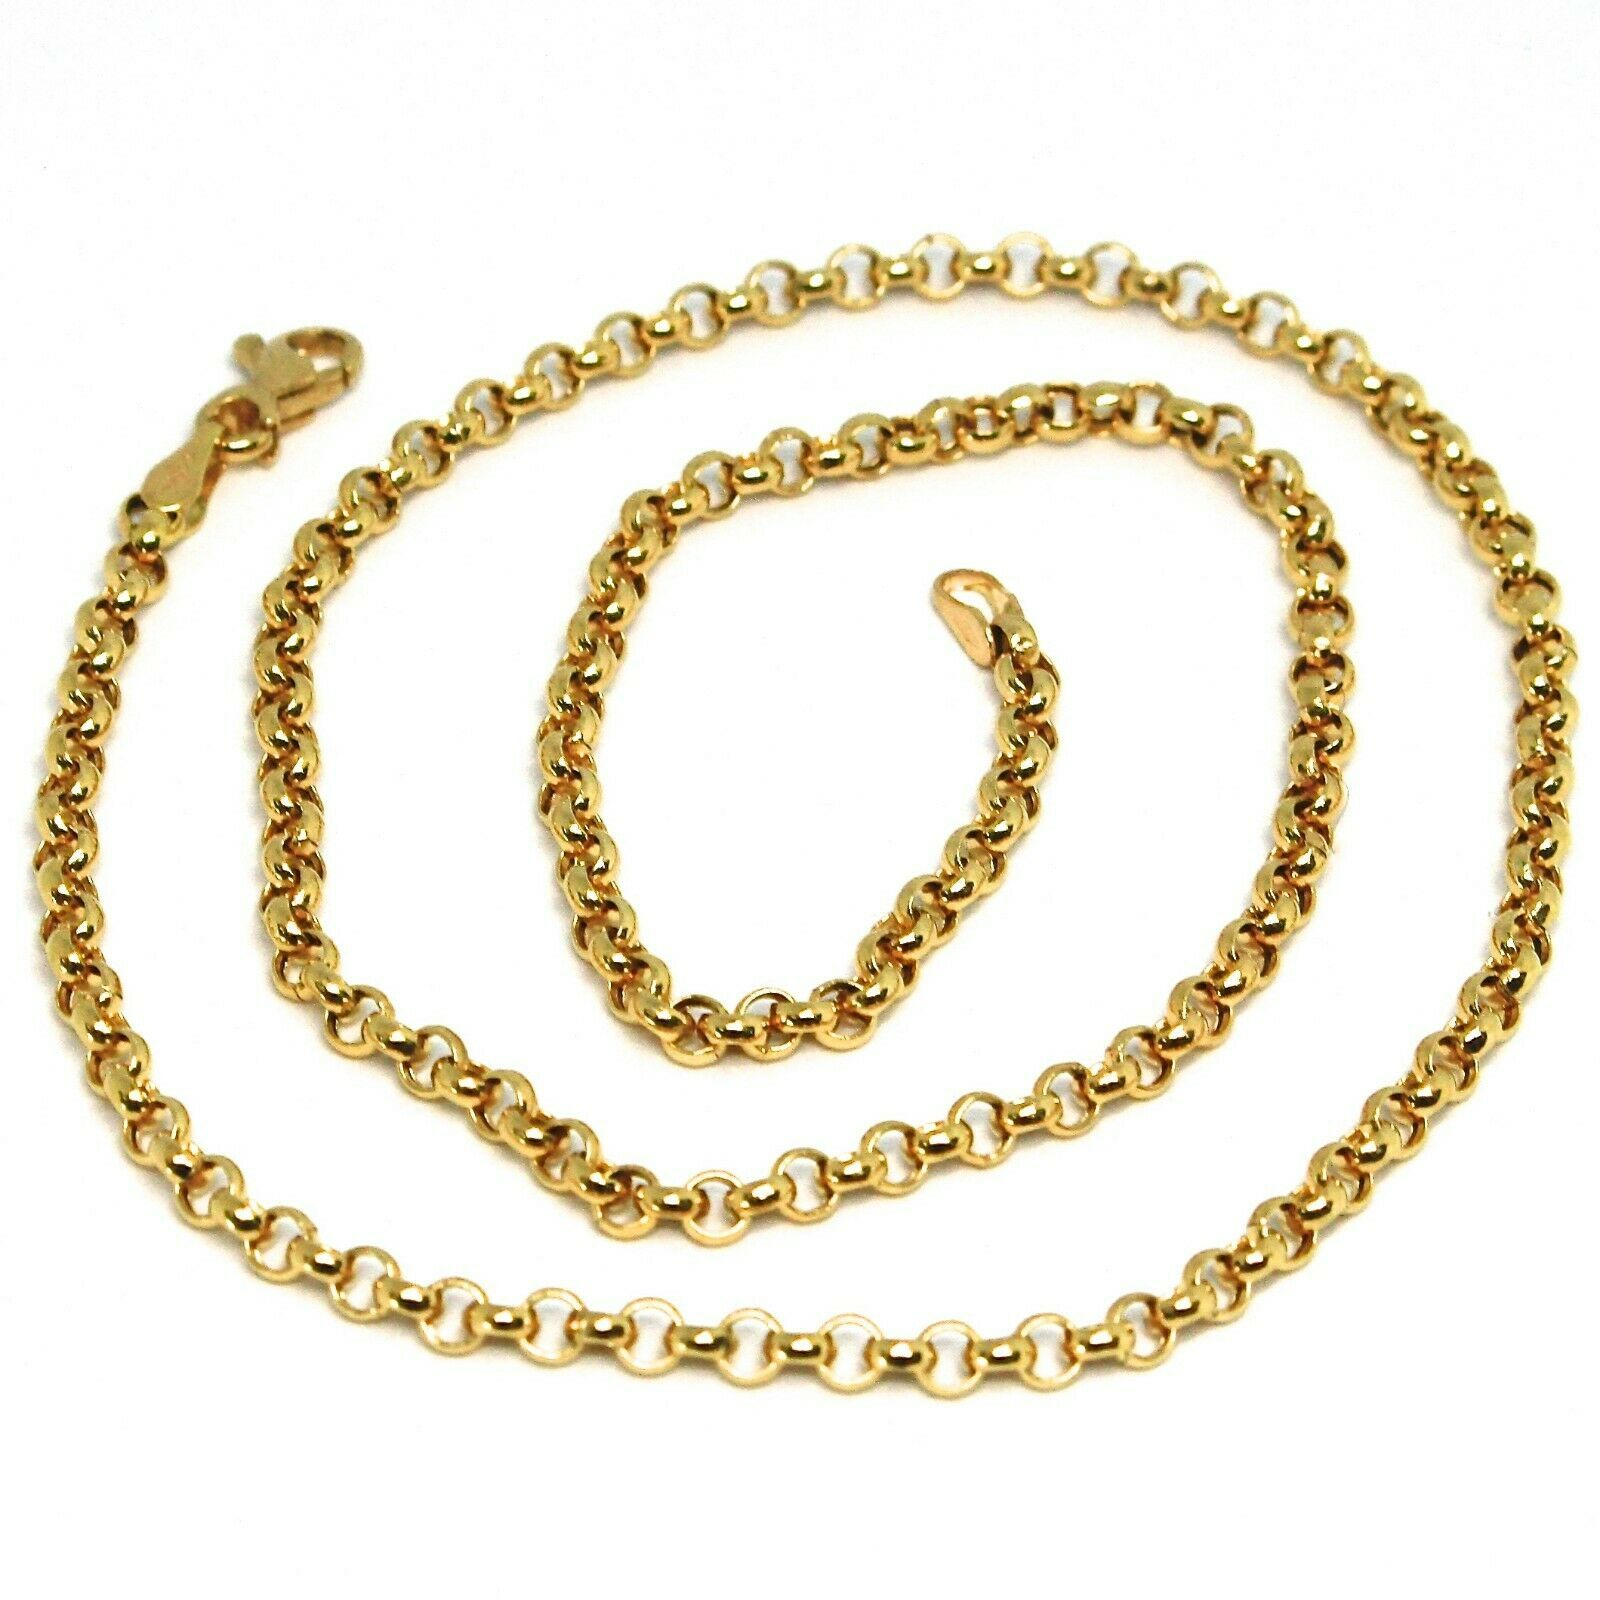 18K YELLOW GOLD ROLO CHAIN 2.5 MM, 20 INCHES, NECKLACE, CIRCLES, MADE IN ITALY